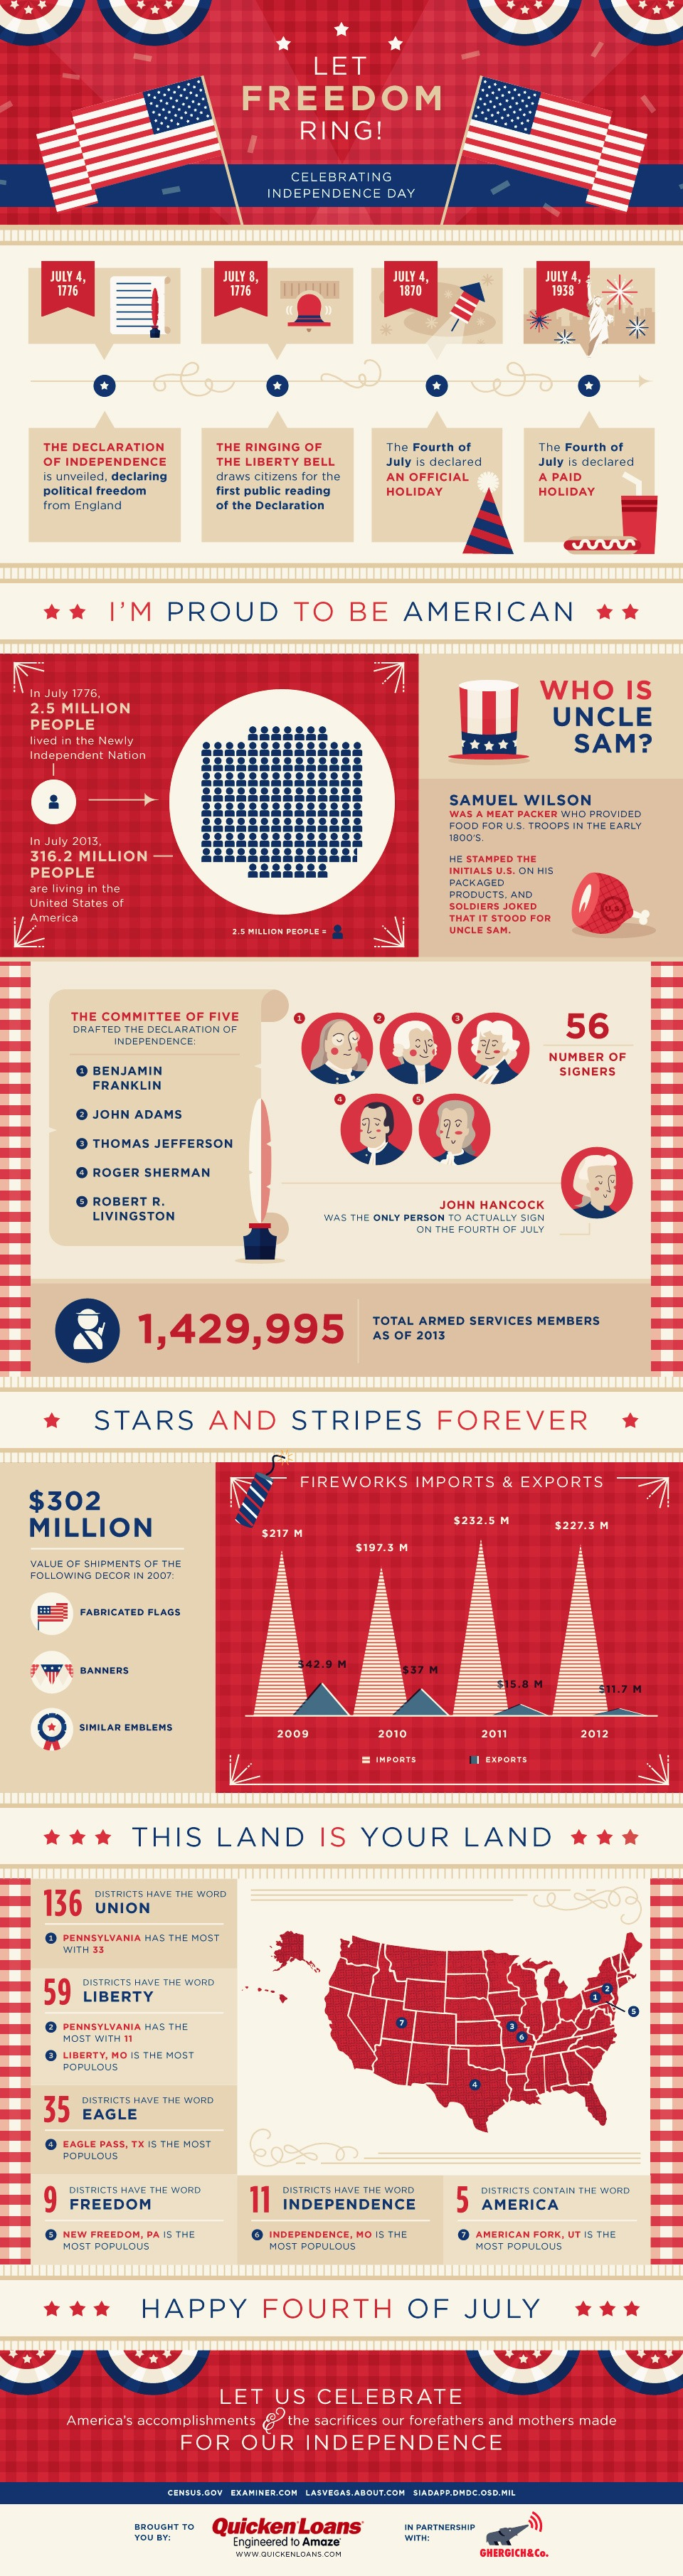 Let Freedom Ring: A Fourth of July Infographic from Quicken Loans